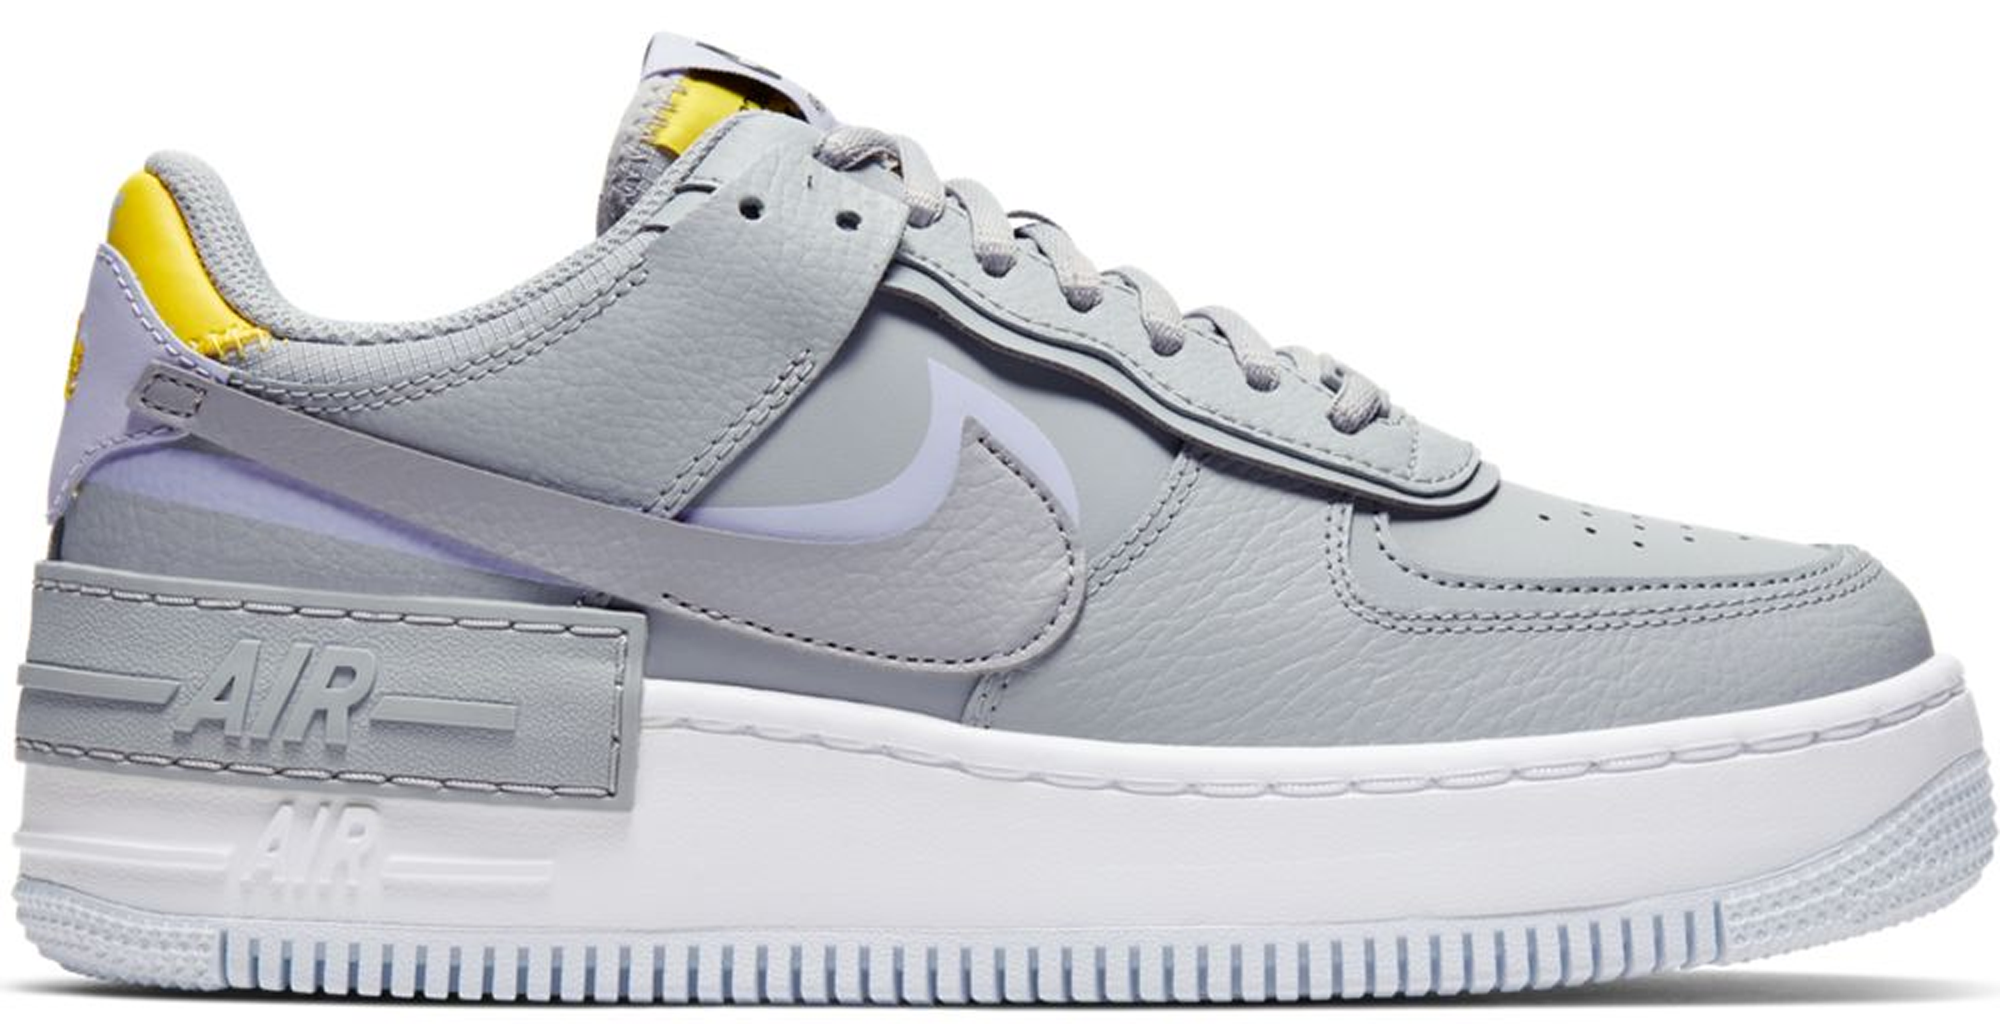 Pre Owned Nike Air Force 1 Shadow Wolf Grey Lavender Mist W In Wolf Grey Lavender Mist Modesens Nike Air Force Shadow Wolf Nike Arriving in a metallic silver colorway, the classic silhouette features a vibrant pop of. pre owned nike air force 1 shadow wolf